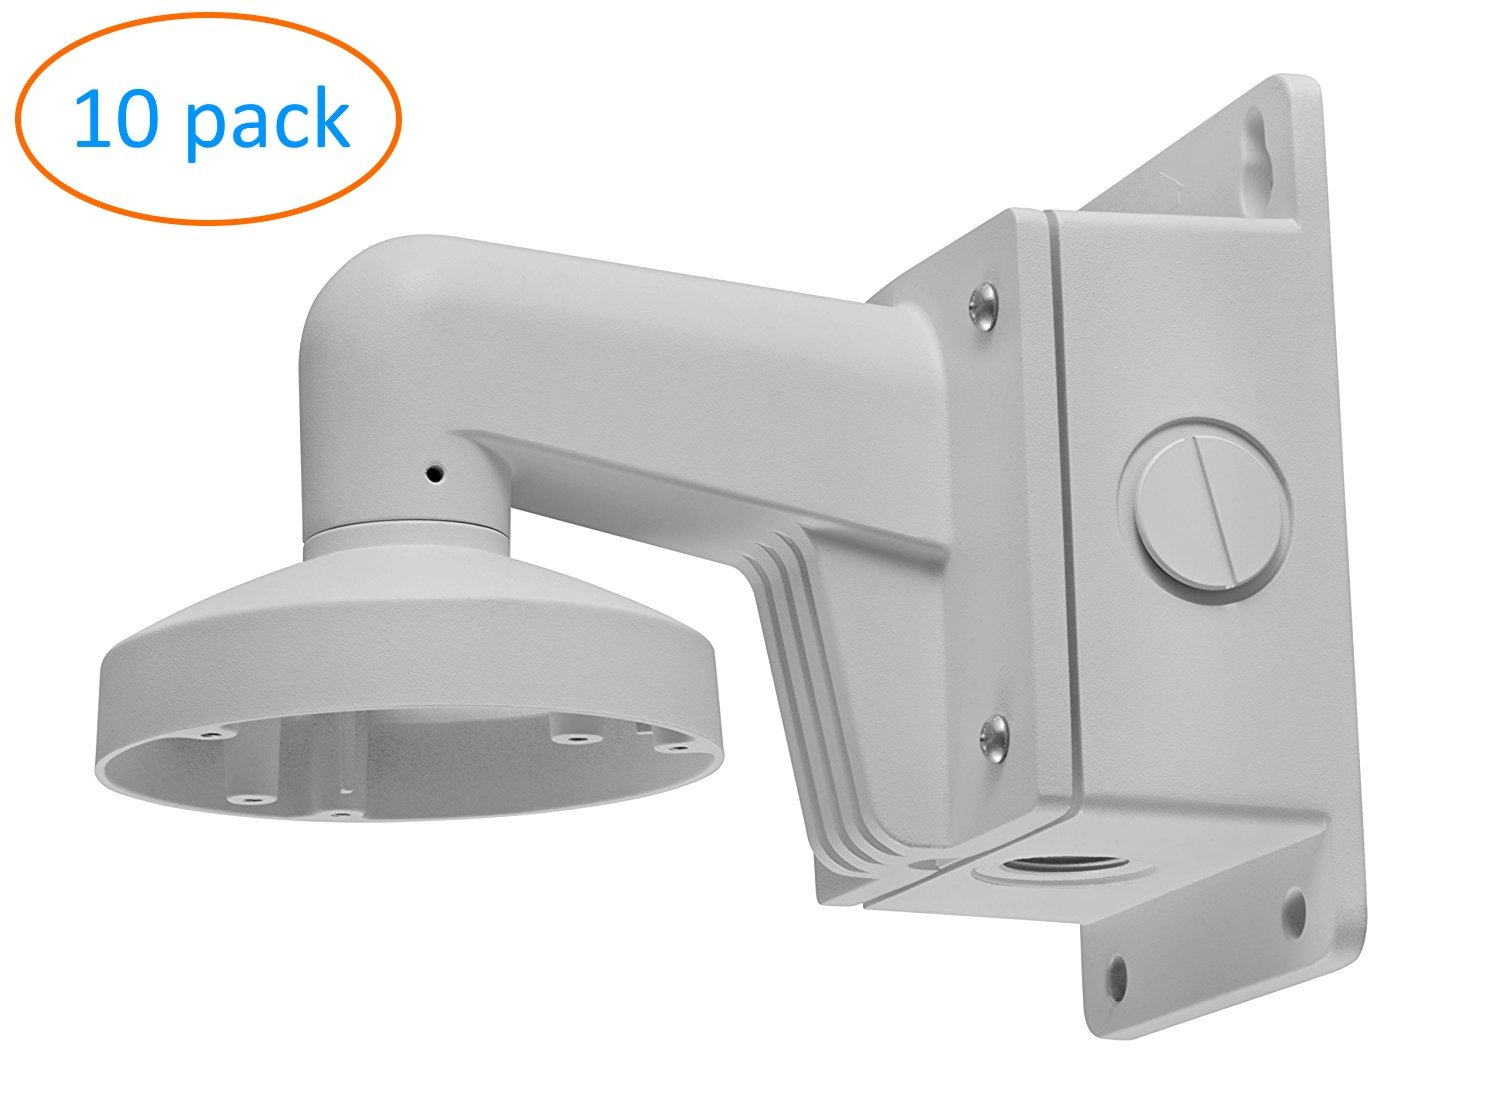 WMS WML PC110B DS-1272ZJ-110B Wall Mount Bracket for Hikvision Fixed Lens Dome IP Camera DS-2CD21x2 - 10 Pack